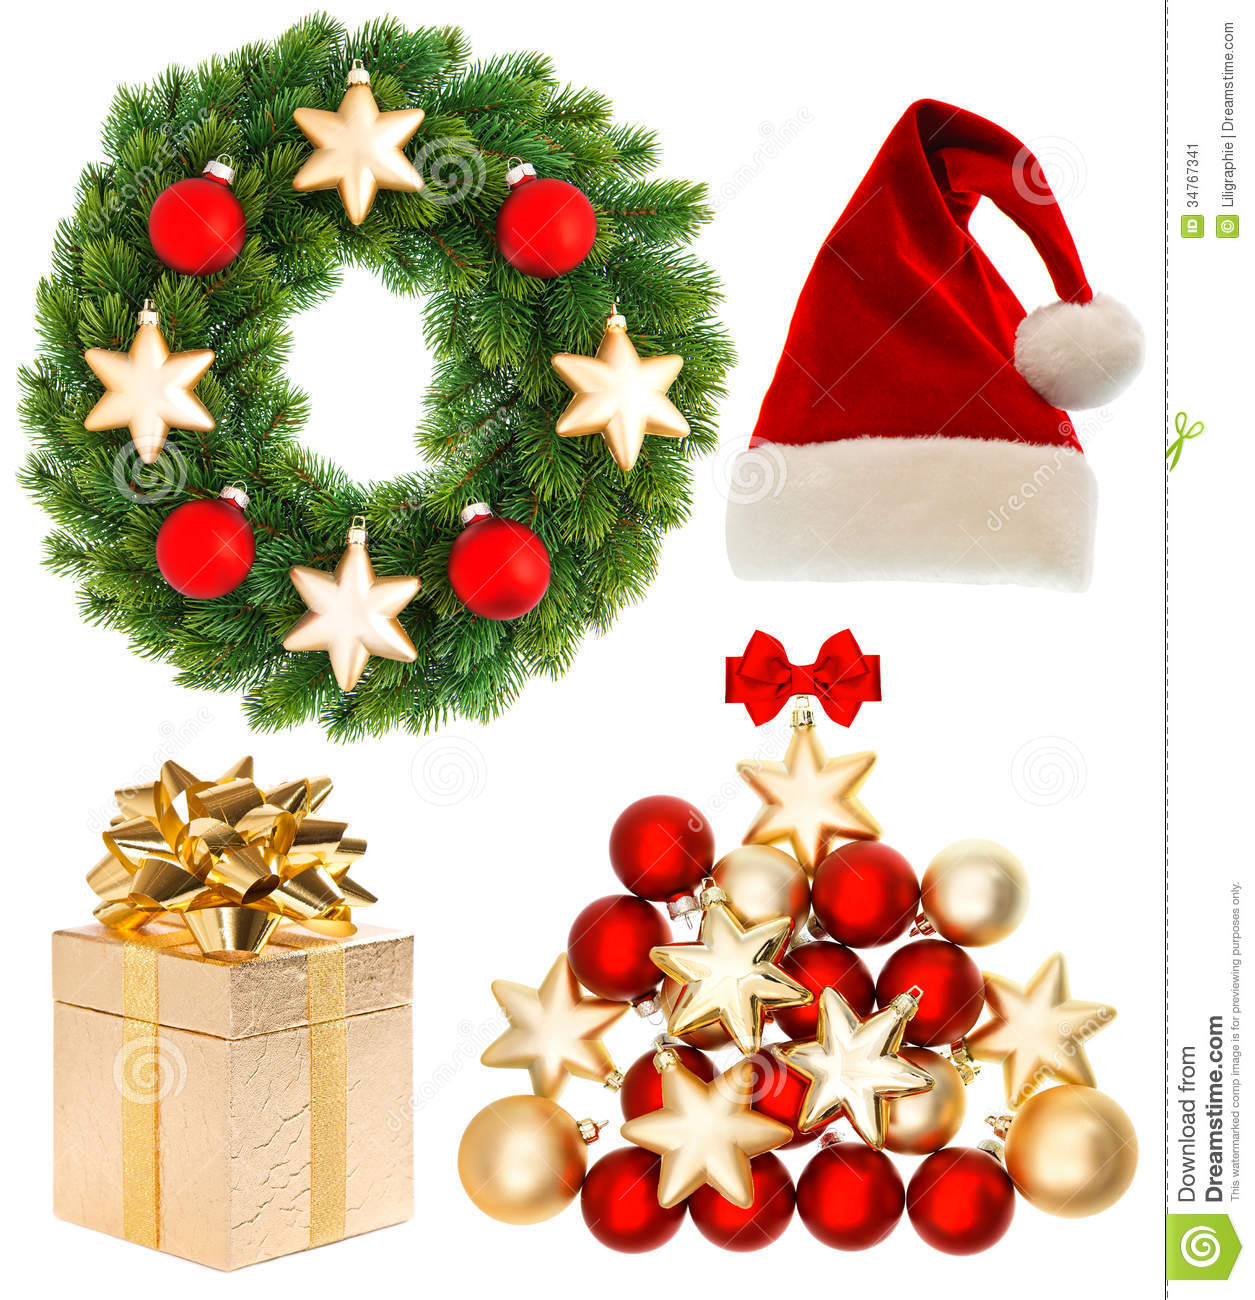 Christmas collection isolated on white background stock for Christmas decoration stuff